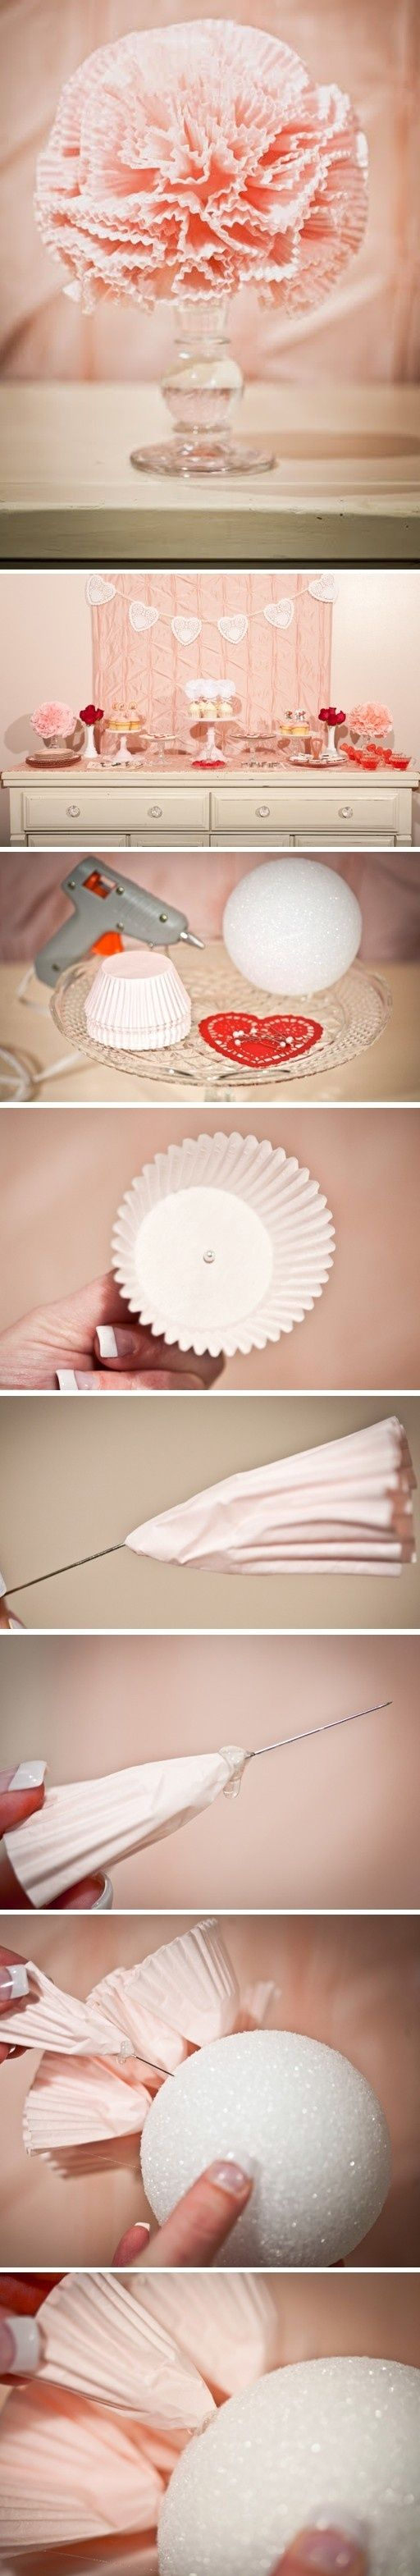 beautiful piece made of cupcake liners - Homemade - Handmade  - DYI - Craft - Nice Idea - Party Idea